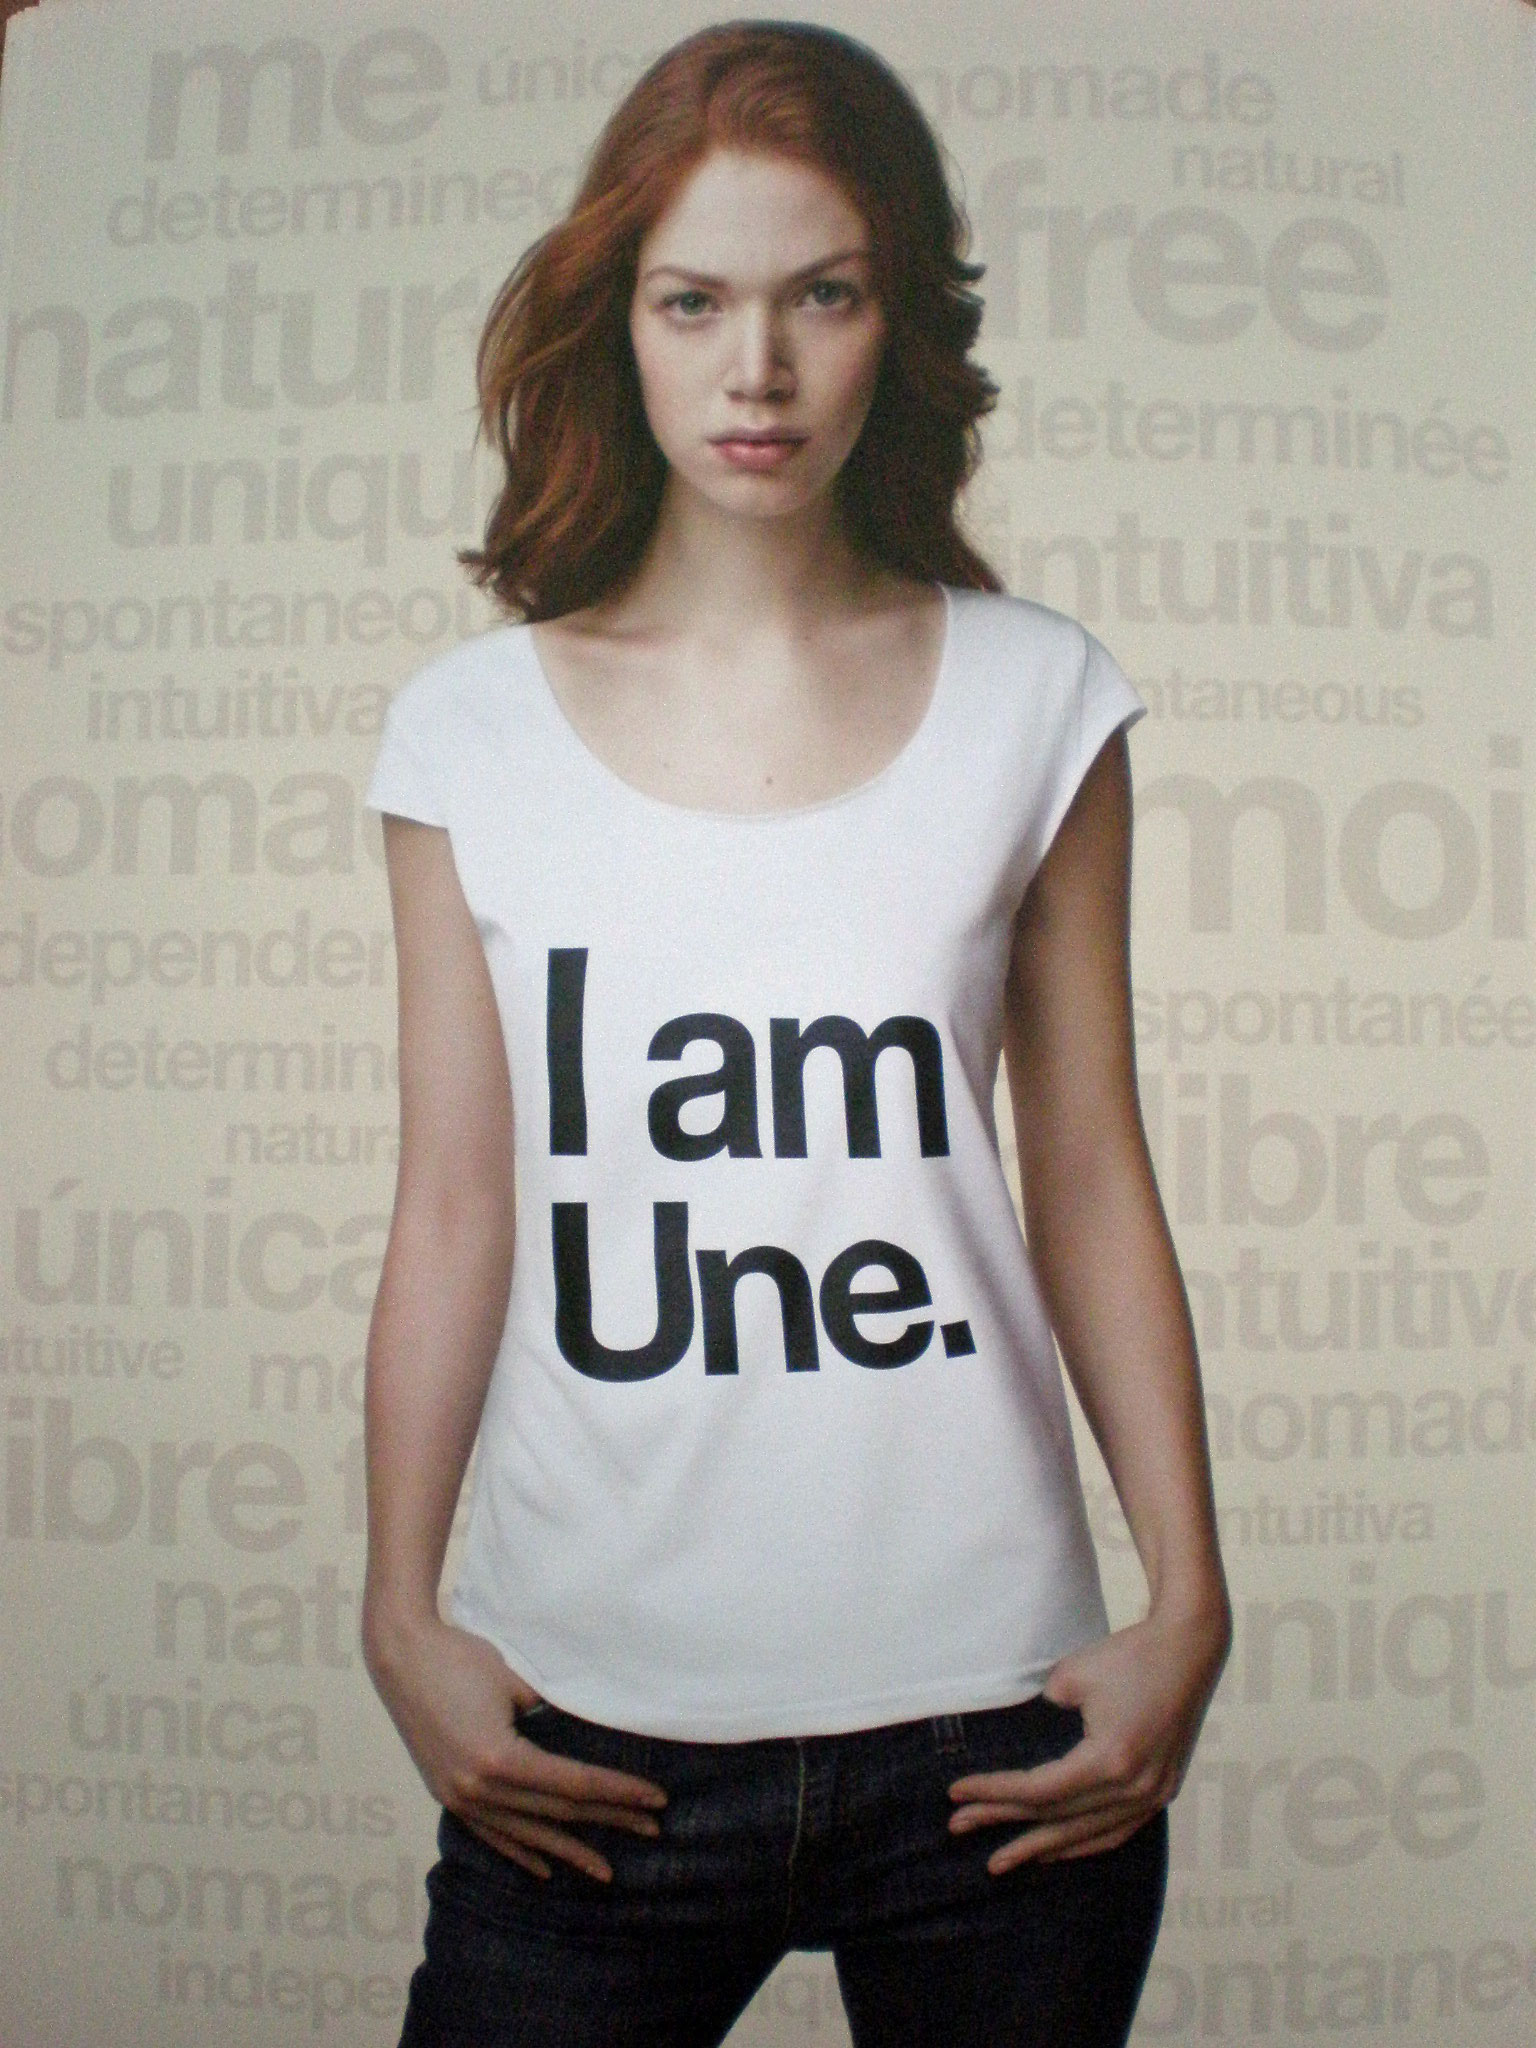 We like the 'Eco' make-up brand from Bourjois: UNE